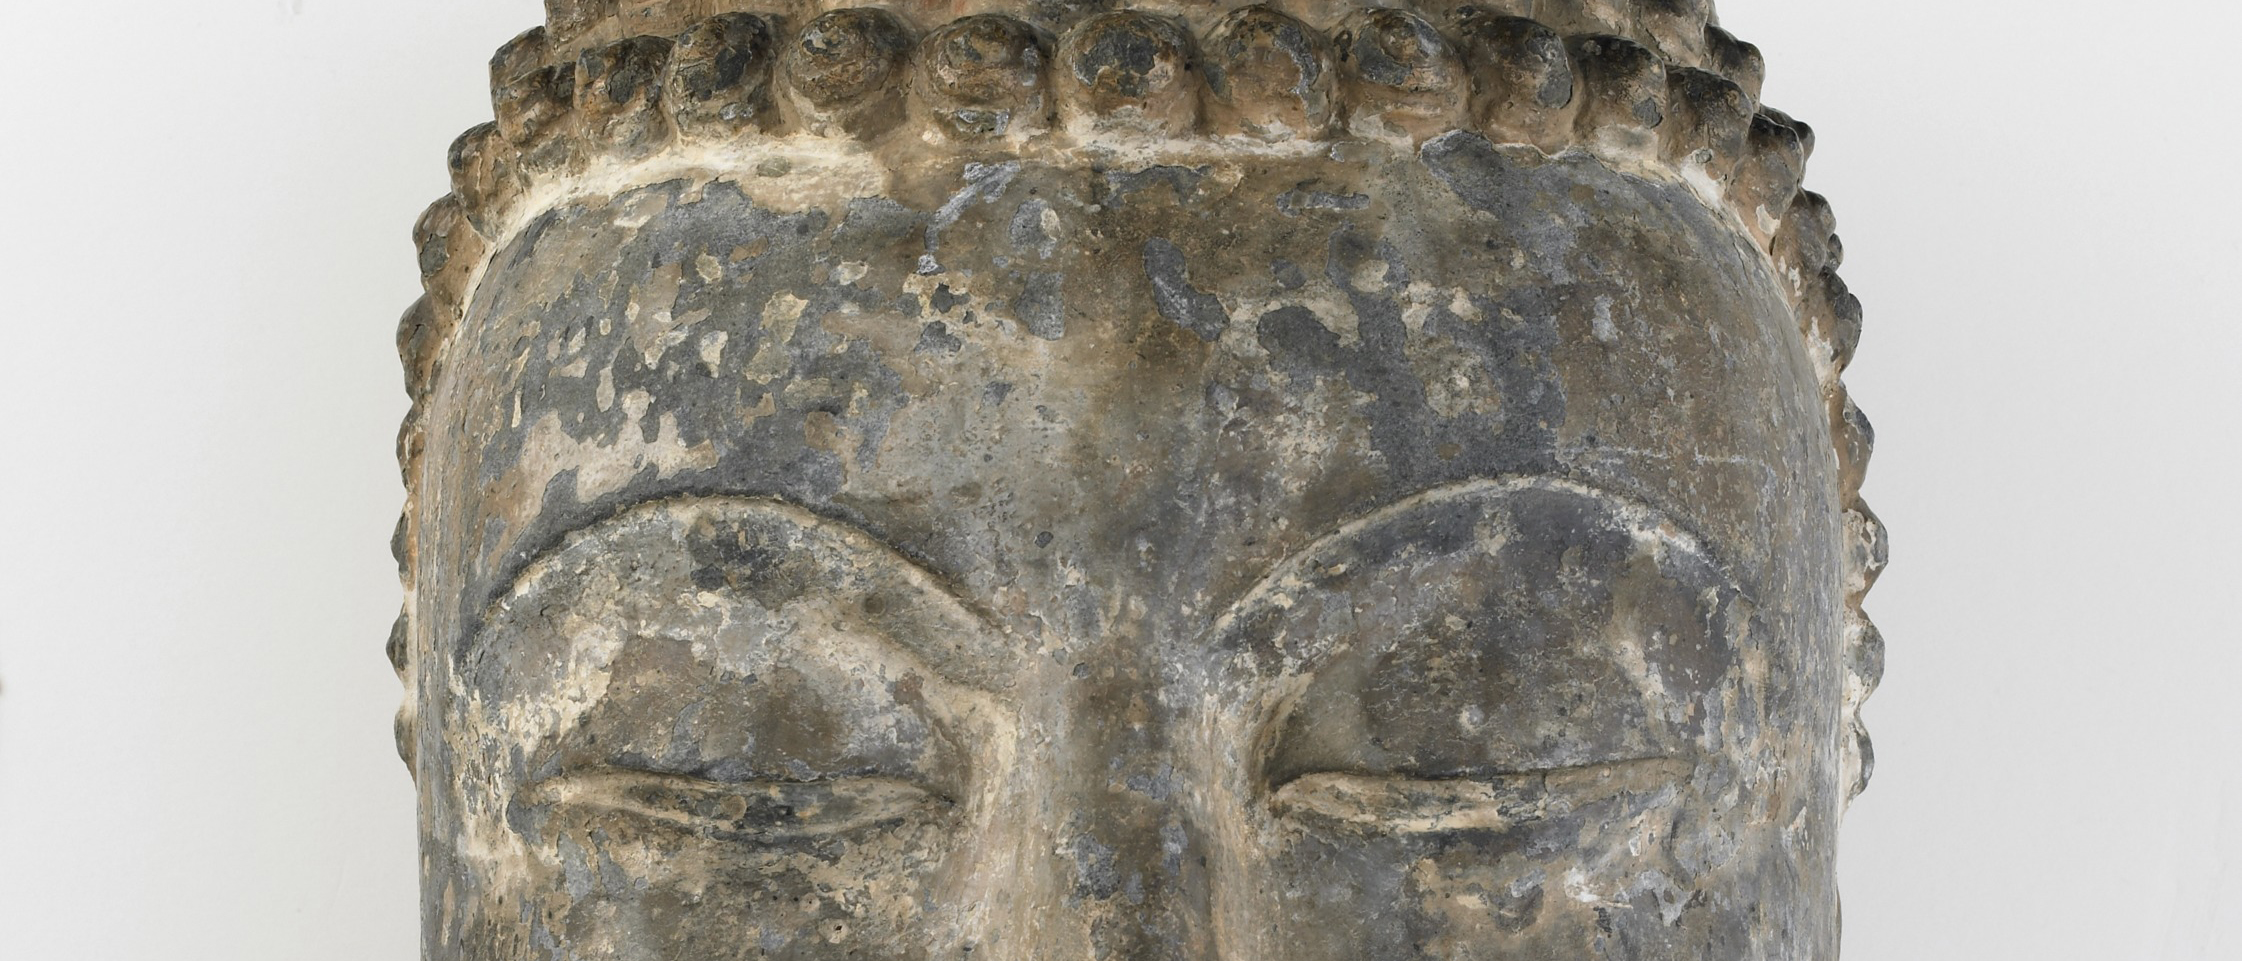 Eyes of a stone buddha sculpture